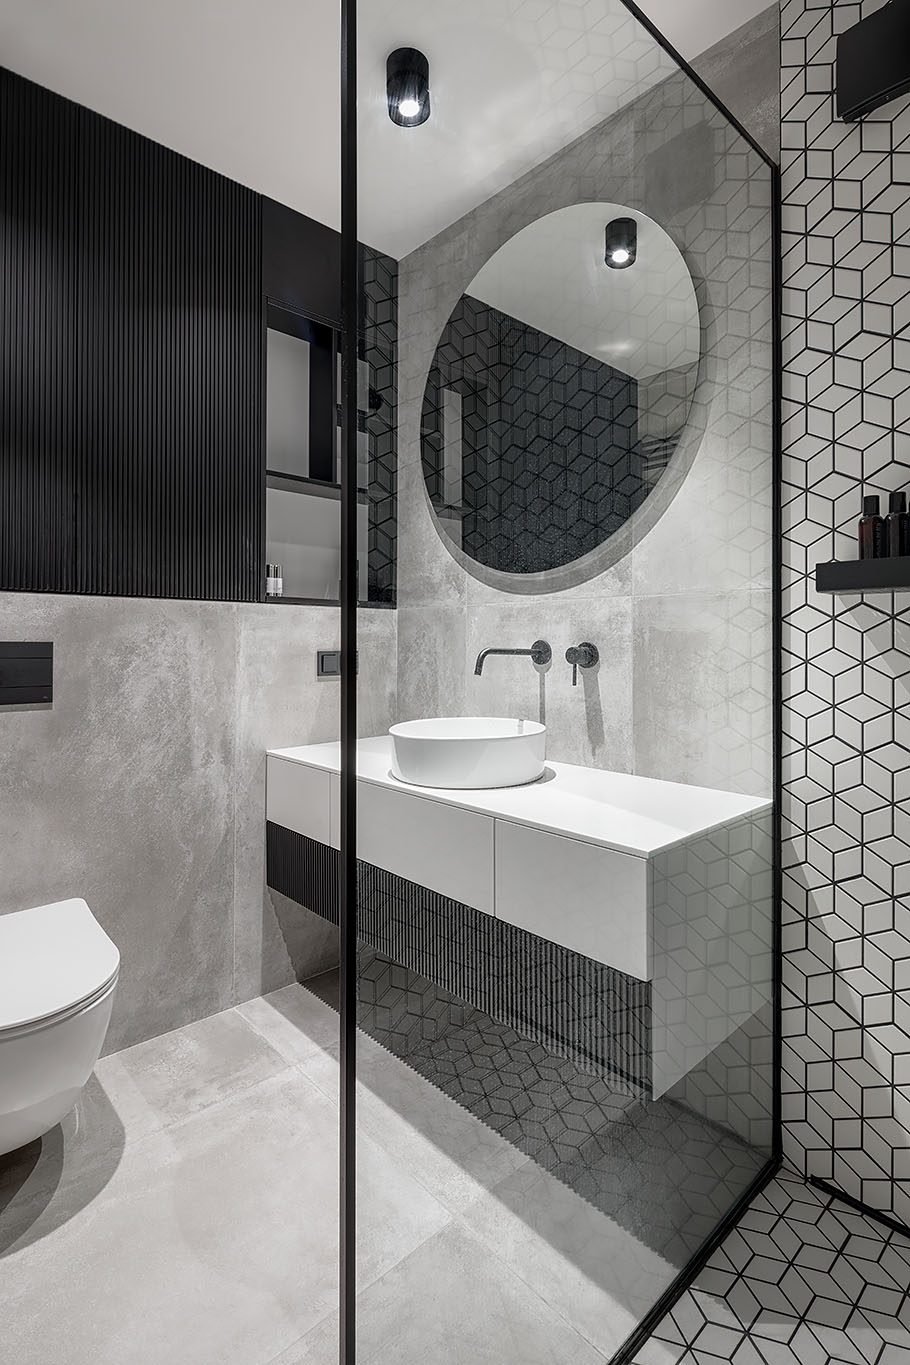 The bathroom includes a white, gray and black interior, with a bright white vanity, concrete wall and floor tiles, white geometric tiles with black grout, and a custom black shelving niche.